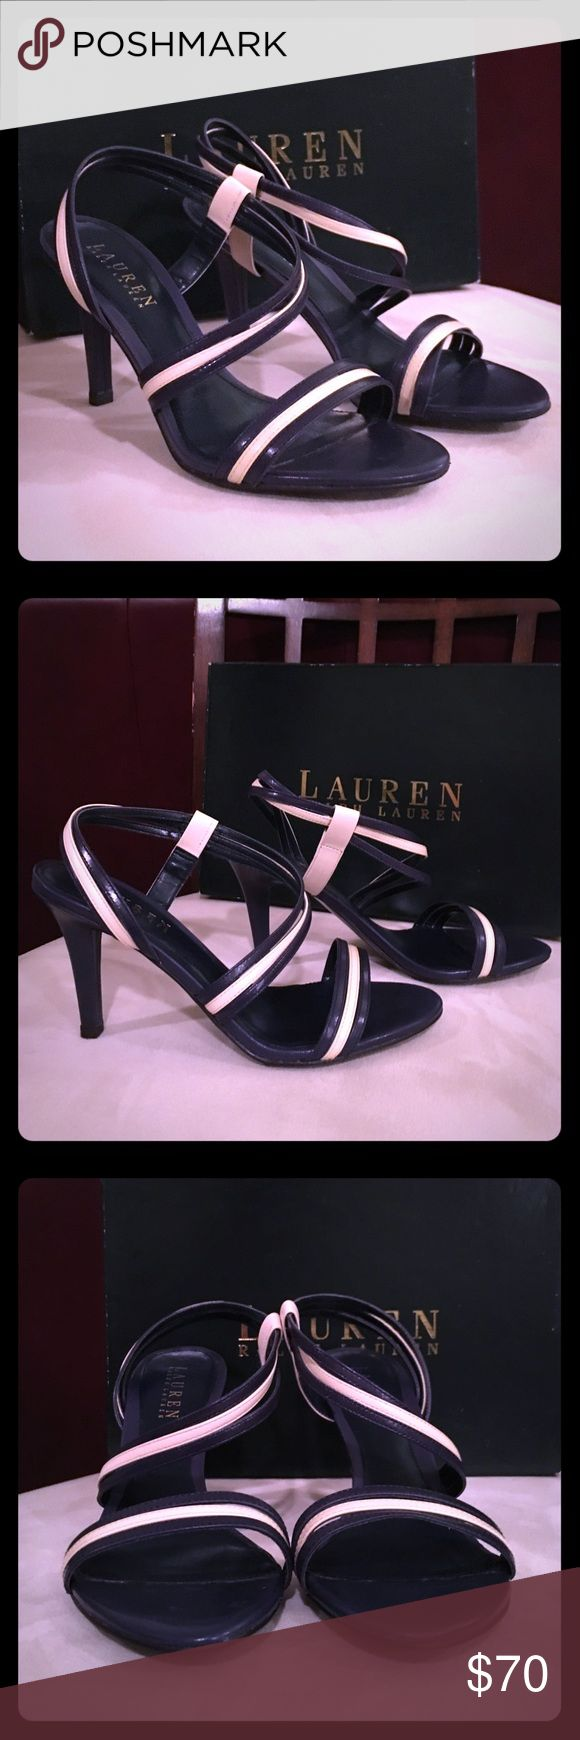 """NWT Lauren Ralph Lauren Navy/Cream Sandals Sz 7.5B NEW with Tags/NEW in Box Gorgeous Lauren Ralph Lauren """"Addie"""" PRC/MDNV Kidskin Sexy Strappy High Heel Sandals Size 7.5B!! Never Worn; Comes with Original Box; Exquisite Midnight Navy Blue and Cream Straps; Heel Measures Approximately 4 inches high; Purchased at Dillard's ⭐️Reasonable Offers Considered!!⭐️ Lauren Ralph Lauren Shoes Sandals"""